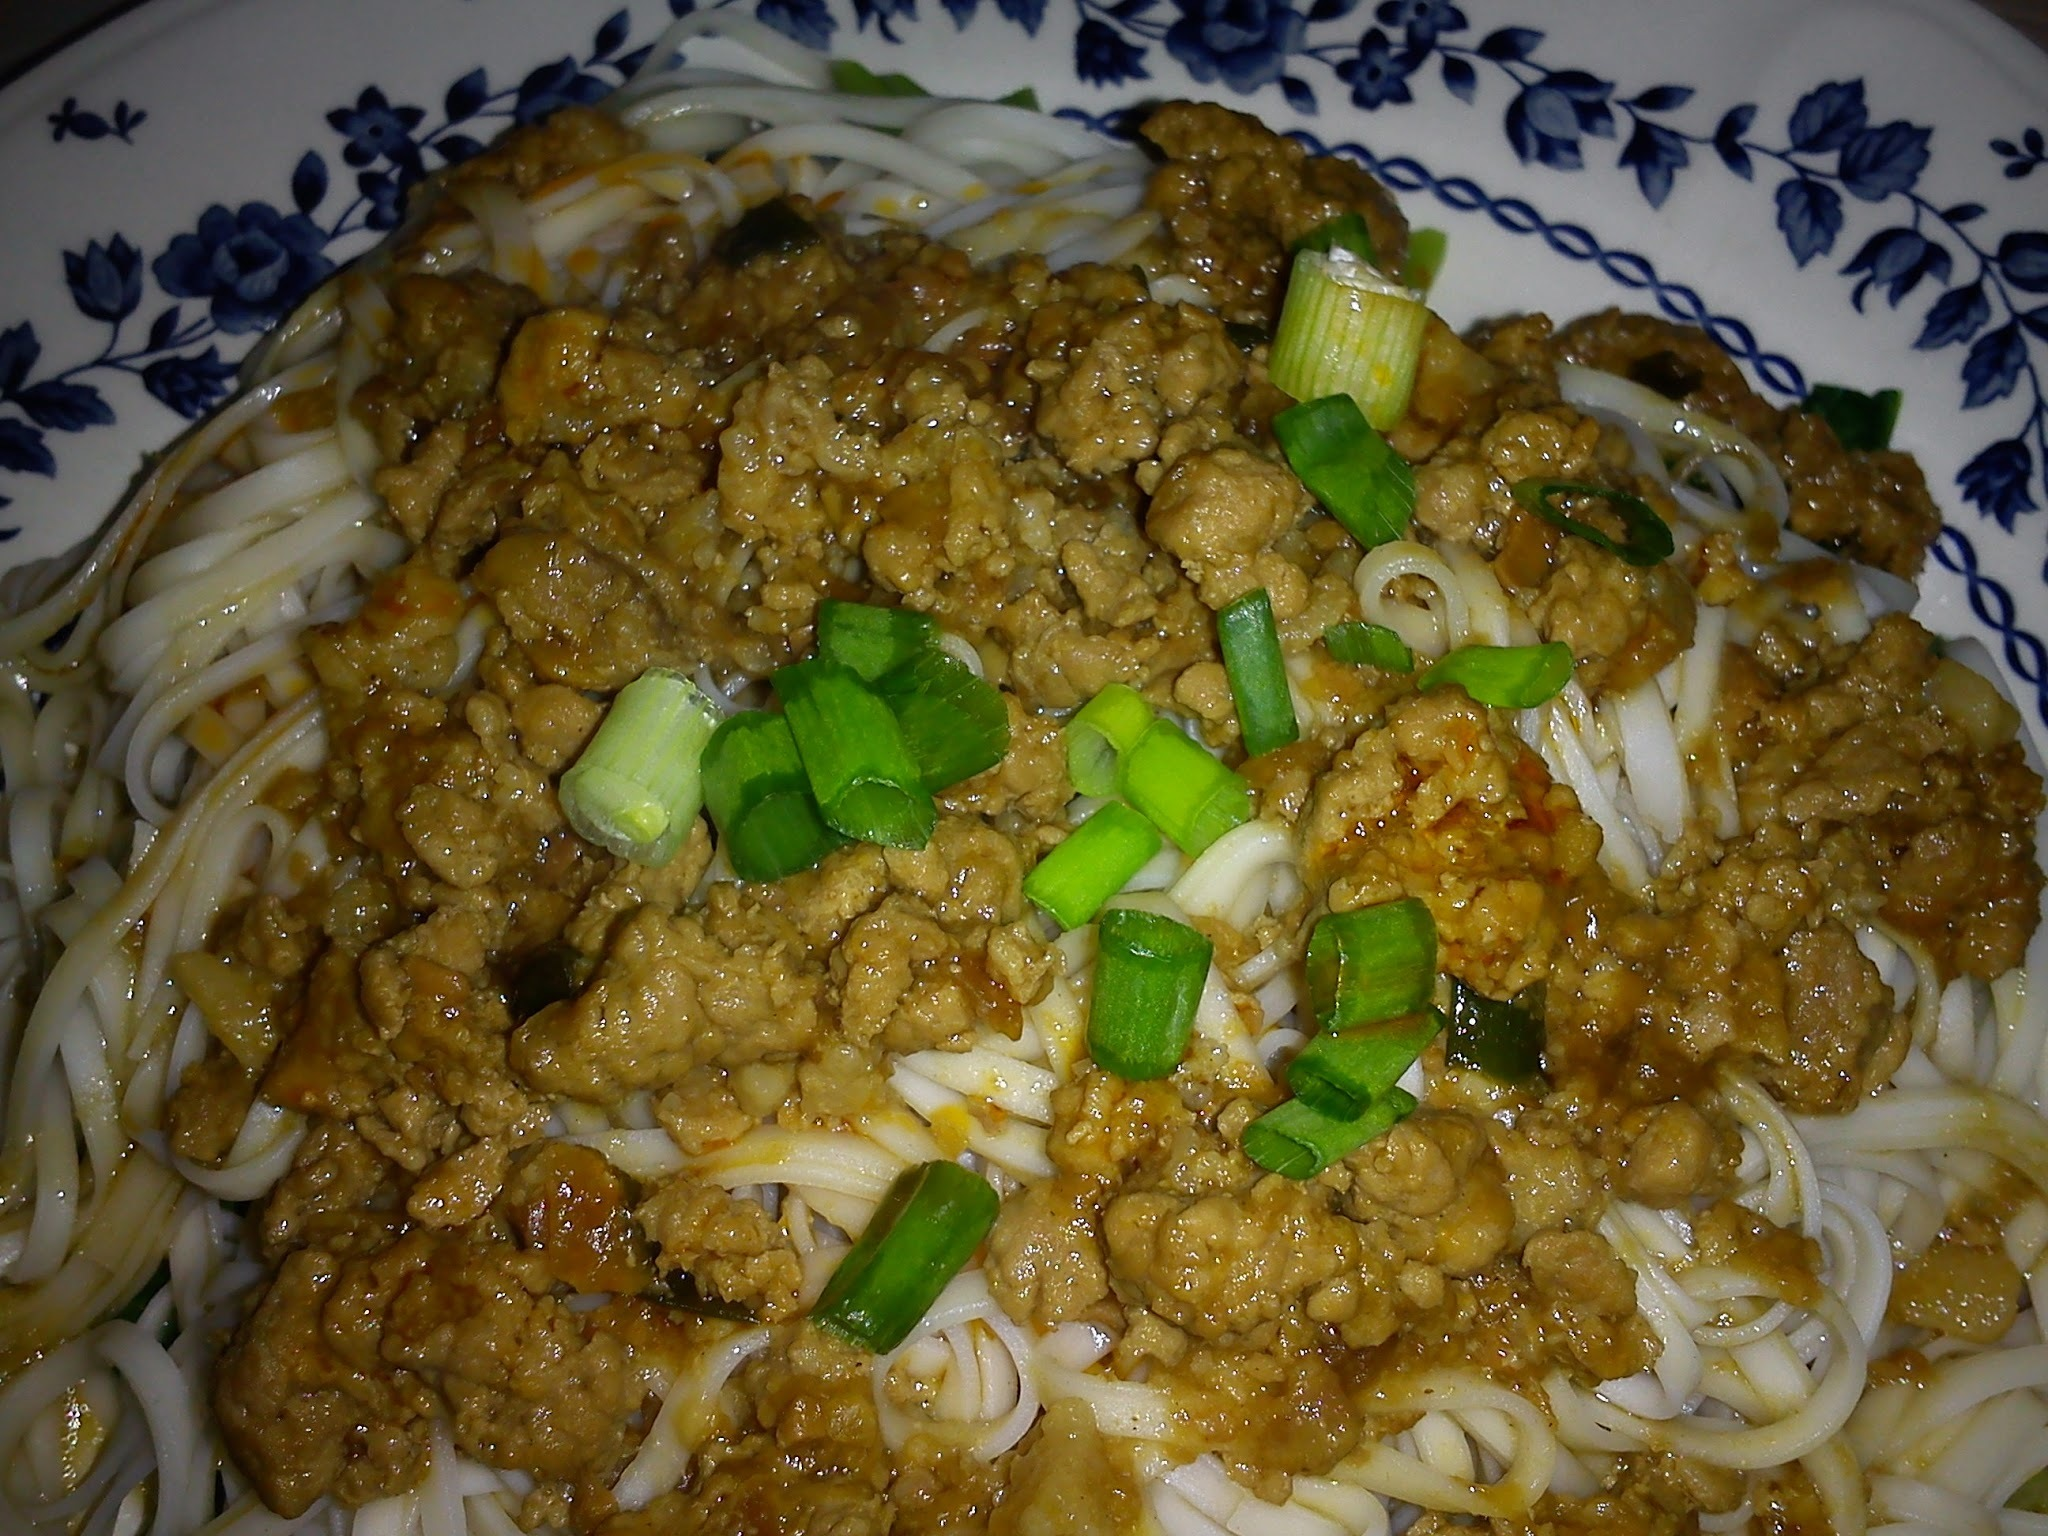 SPICY NOODLES WITH MINCED MEAT SAUCE